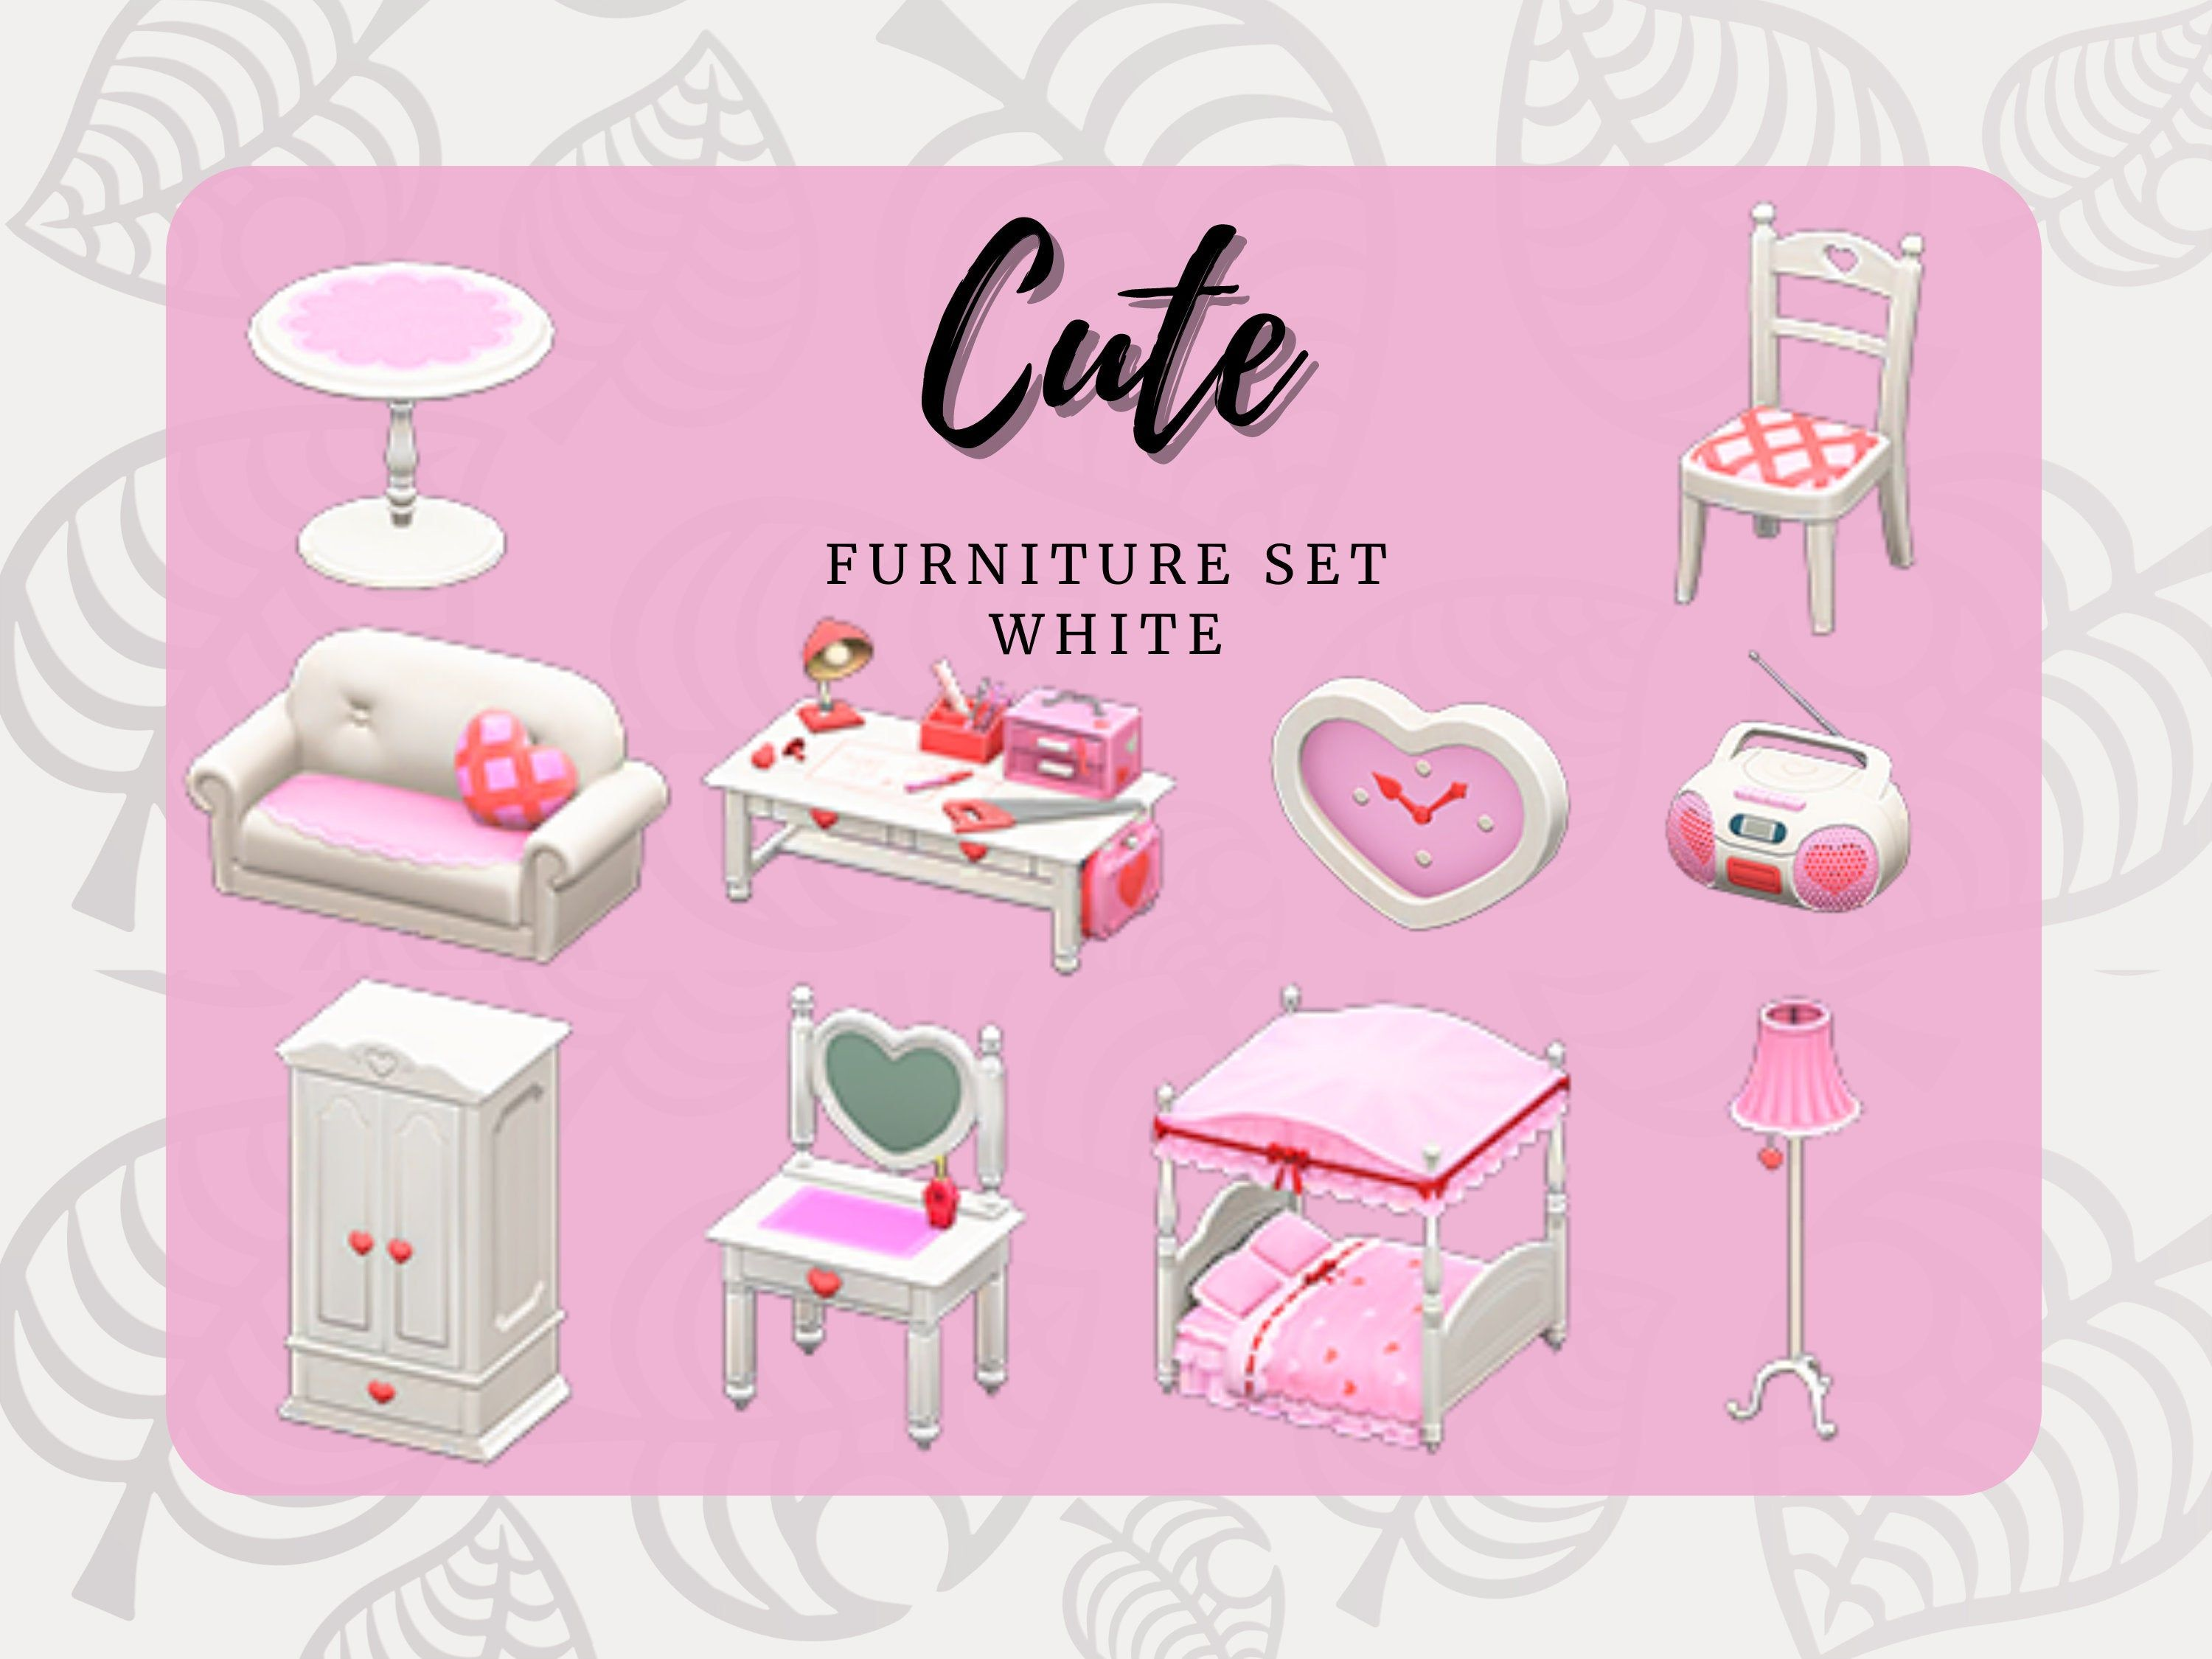 Animal Crossing Acnh Cute Full Furniture Sets All Colors Etsy Animal Crossing Cute Furniture Animal Crossing Game